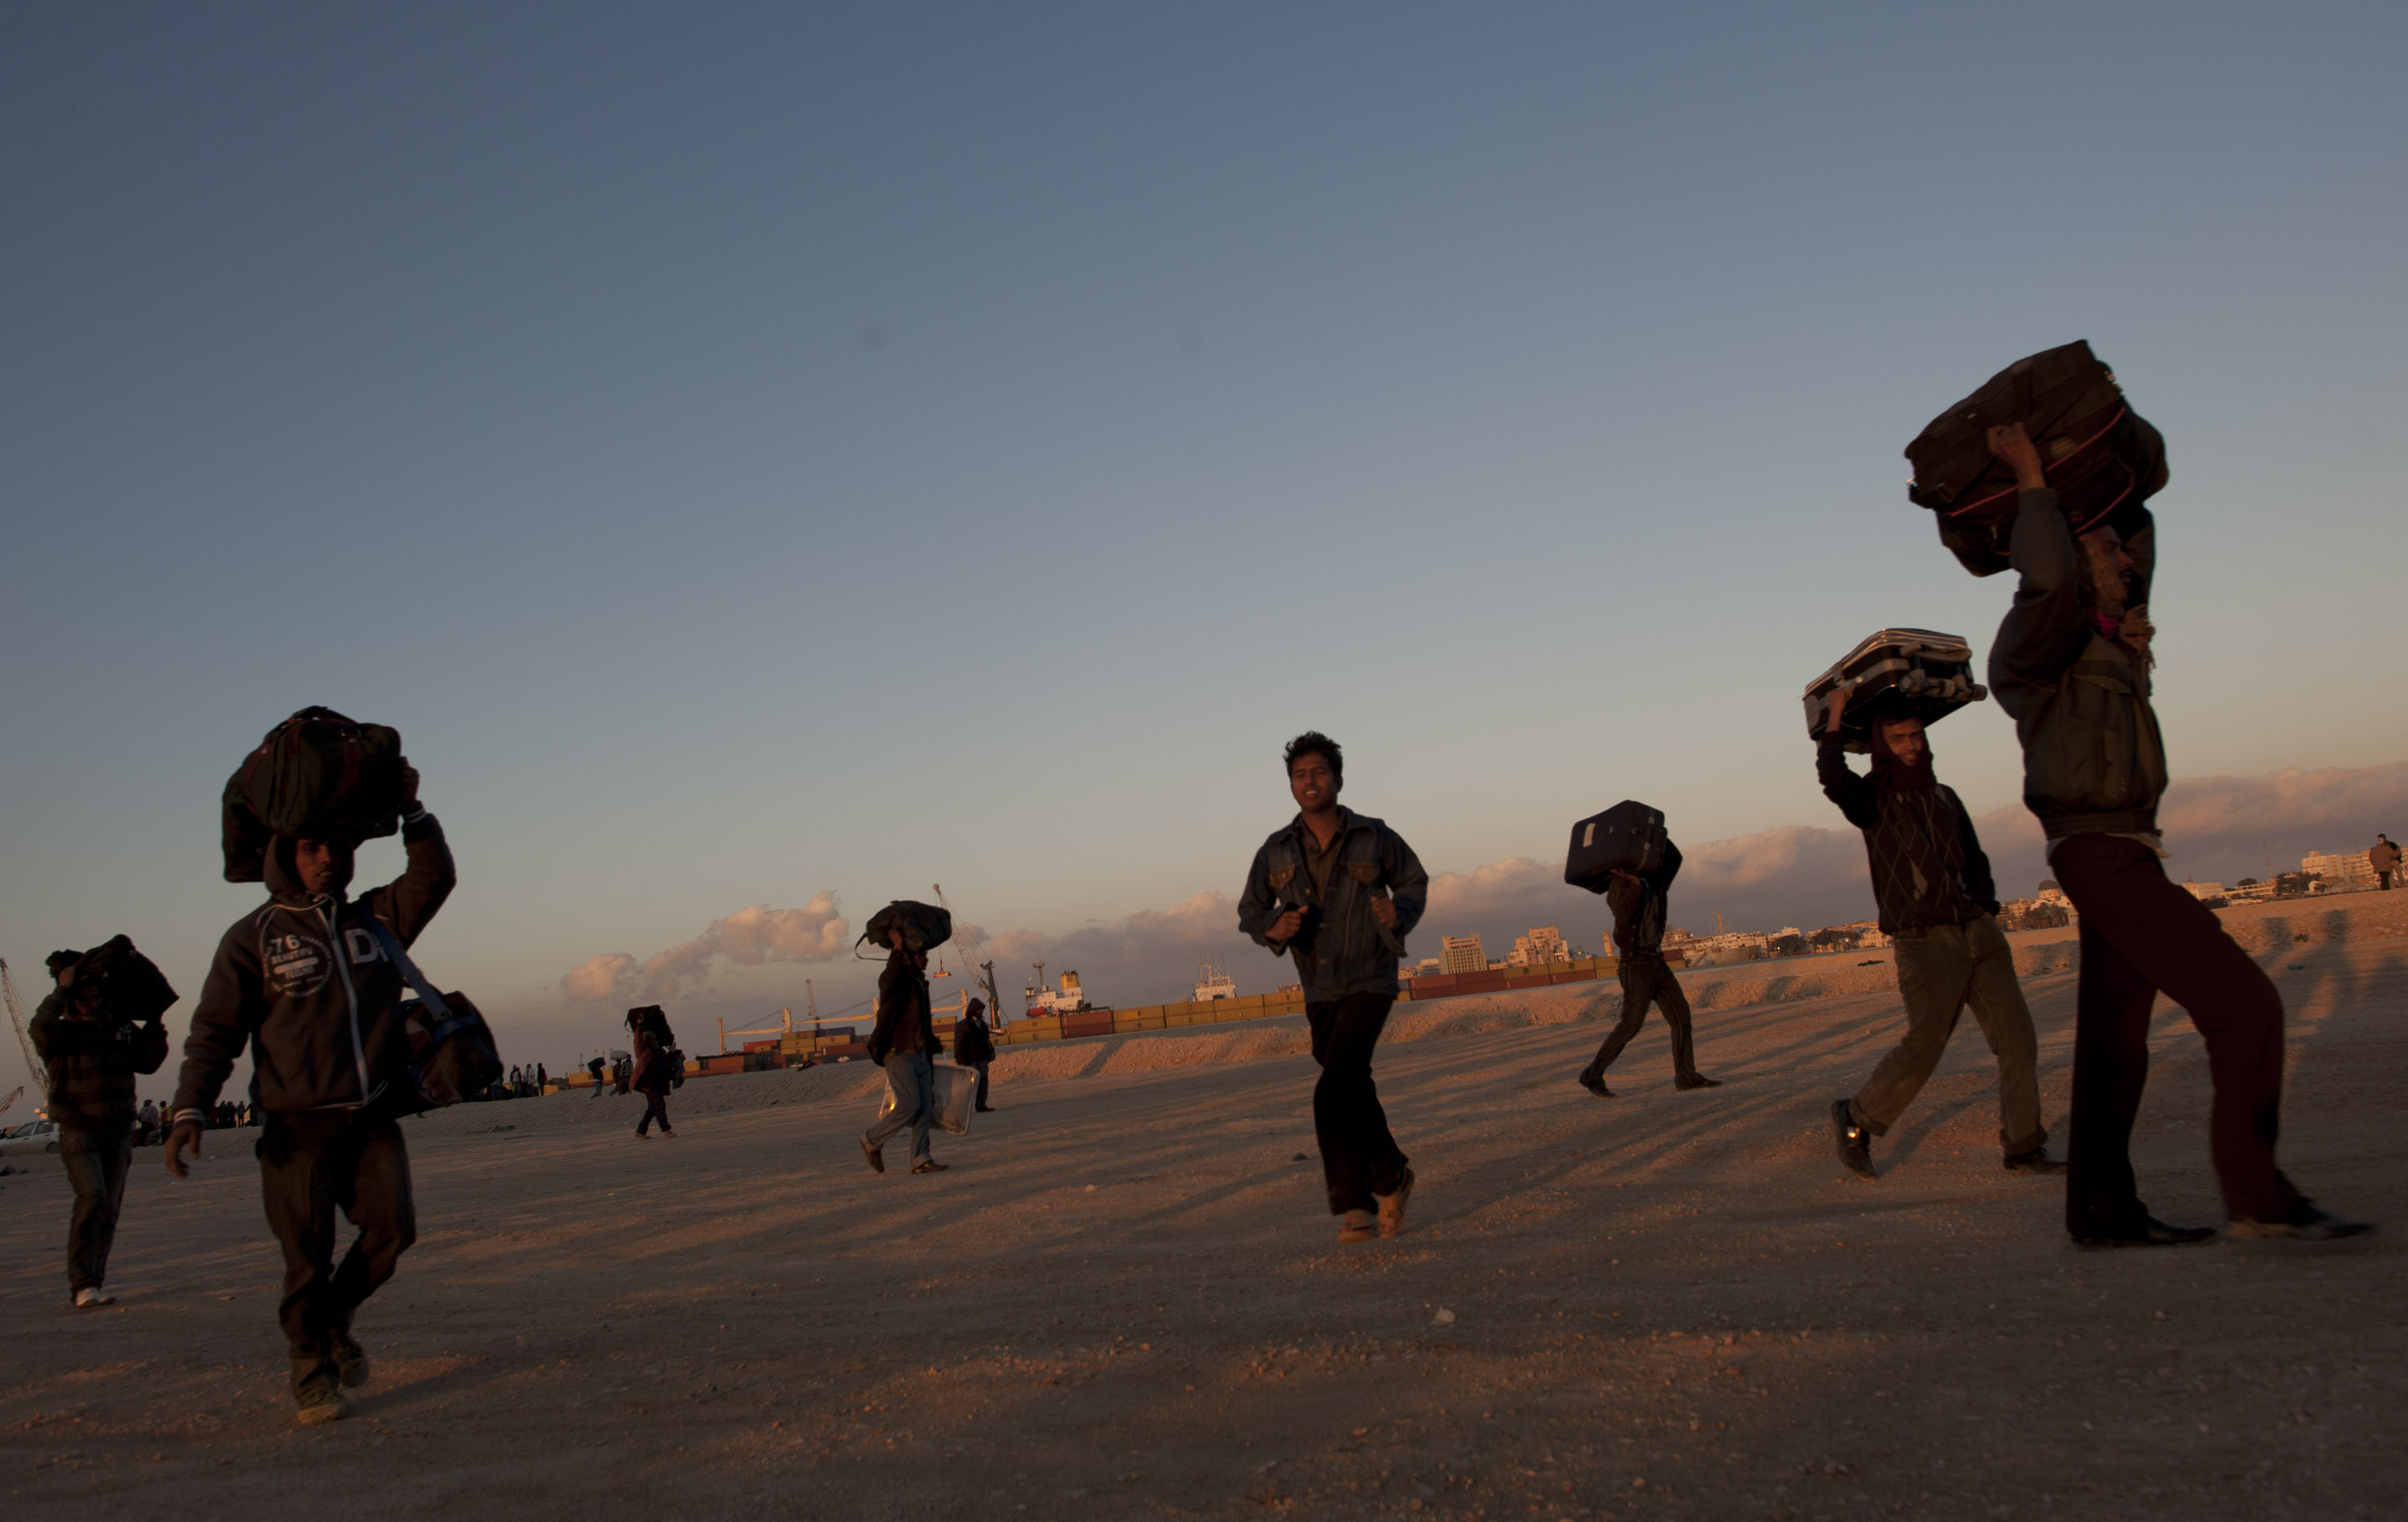 Bangladeshi workers carry their luggage across the grounds of the port in search of a ship to take them out of Benghazi, in Eastern Libya, as the fighting continues between opposition forces and those loyal to Col. Qaddafi across Libya, February 28, 2011. Thousands of workers living in Libya of various nationalities have fled the fighting across the country.